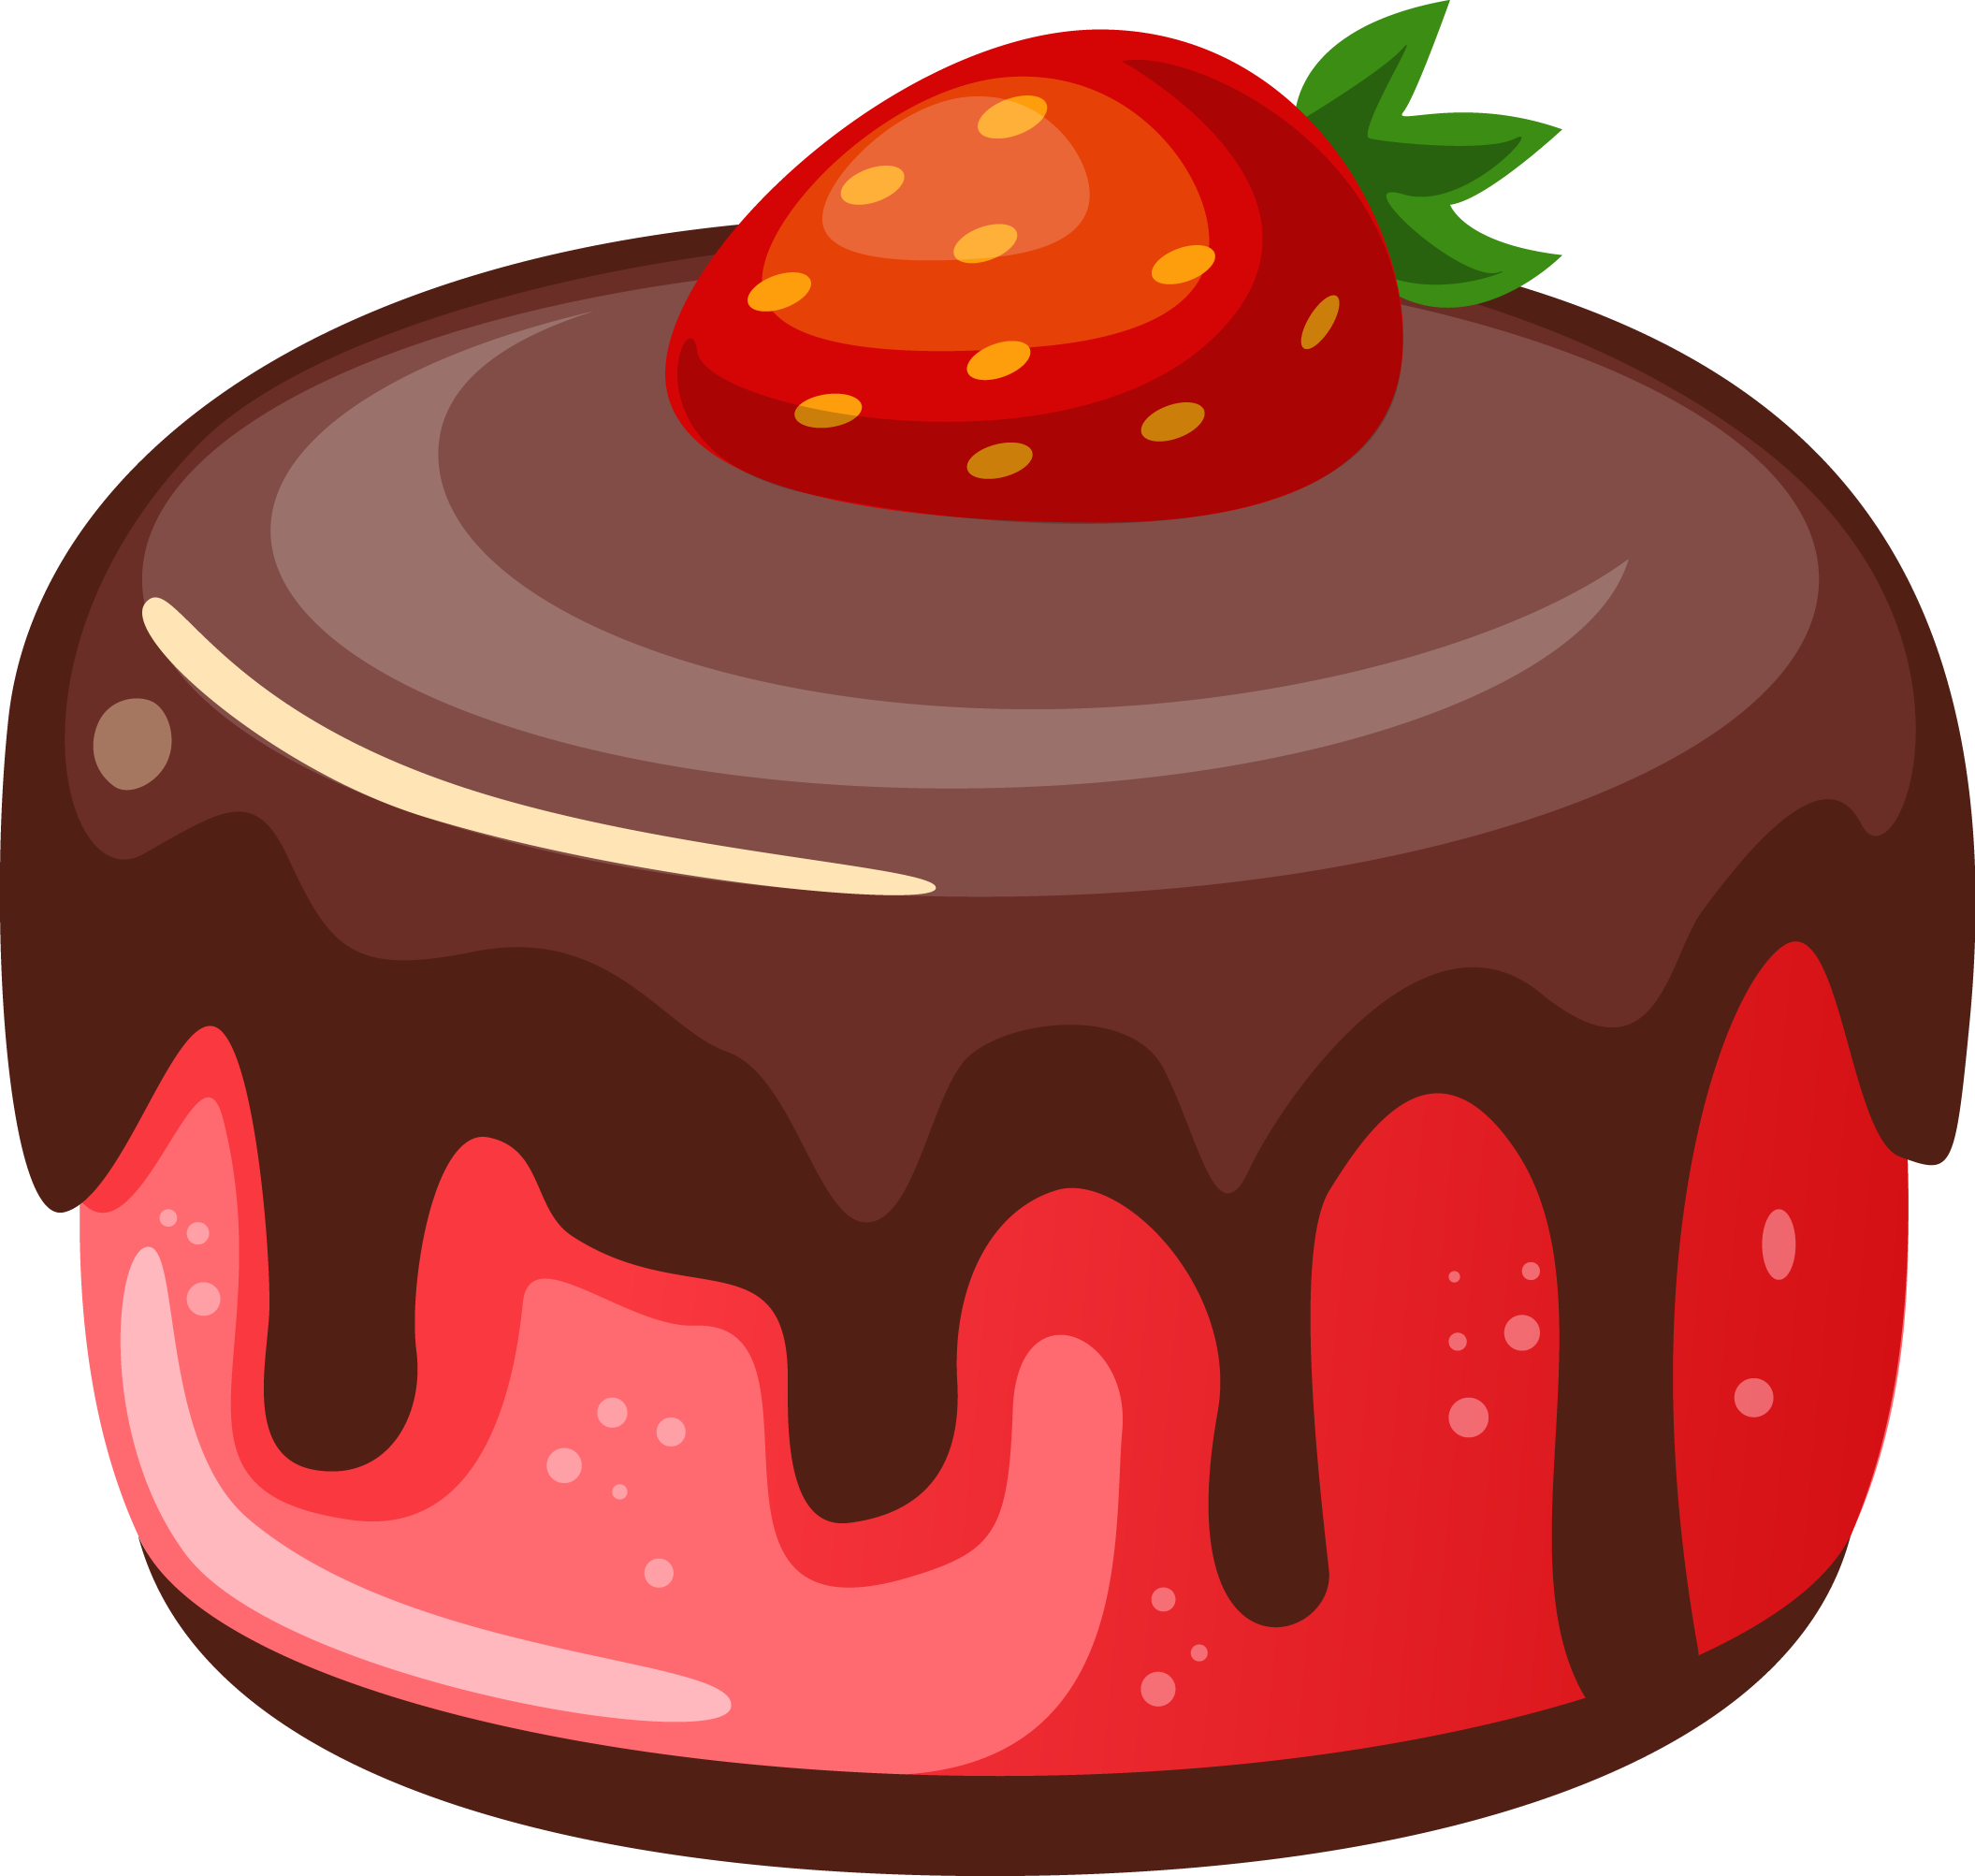 desserts clipart chocolate tart